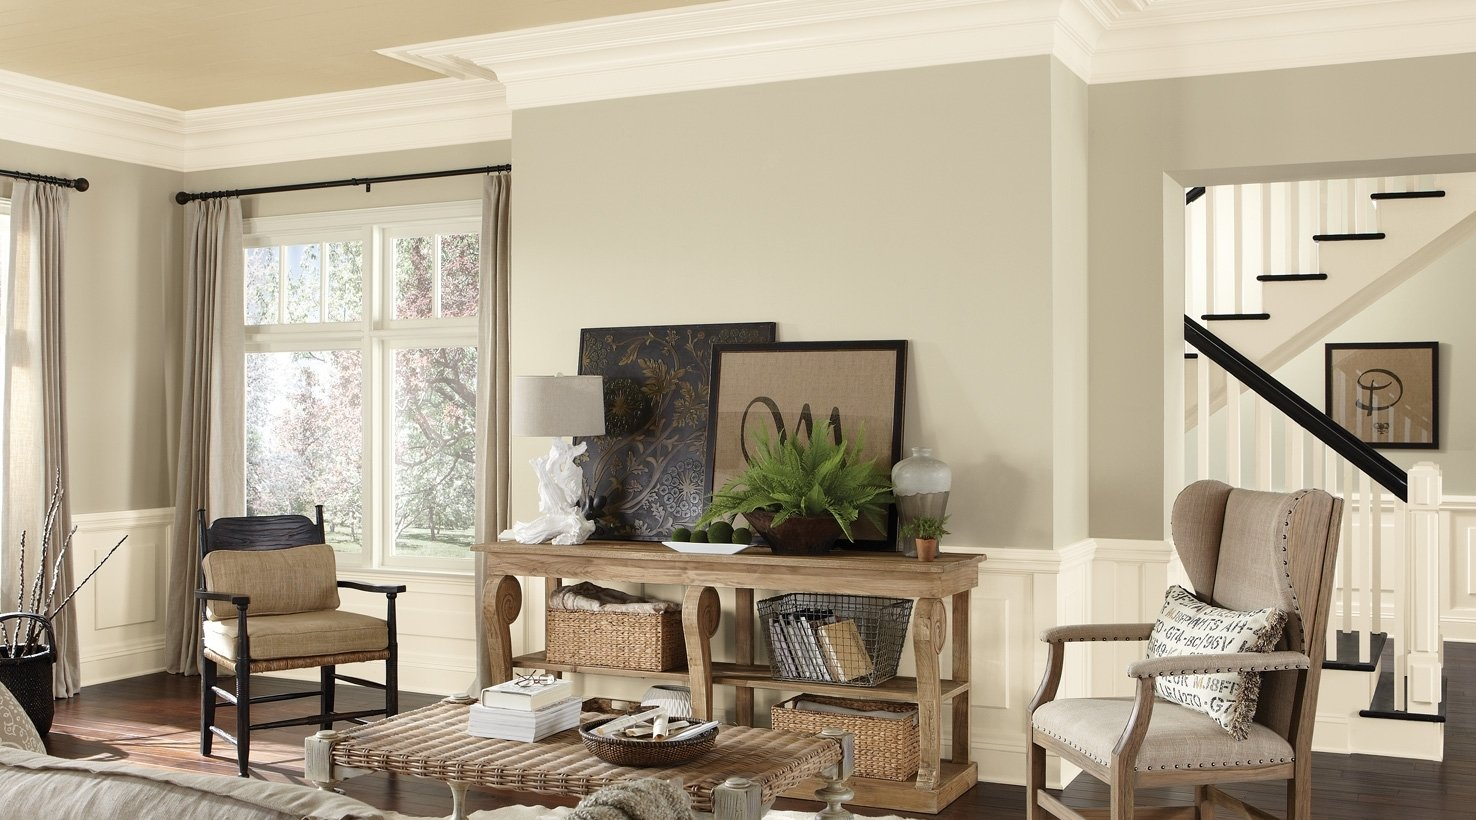 10 Attractive Wall Color Ideas For Living Room living room paint color ideas inspiration gallery sherwin williams 31 2020